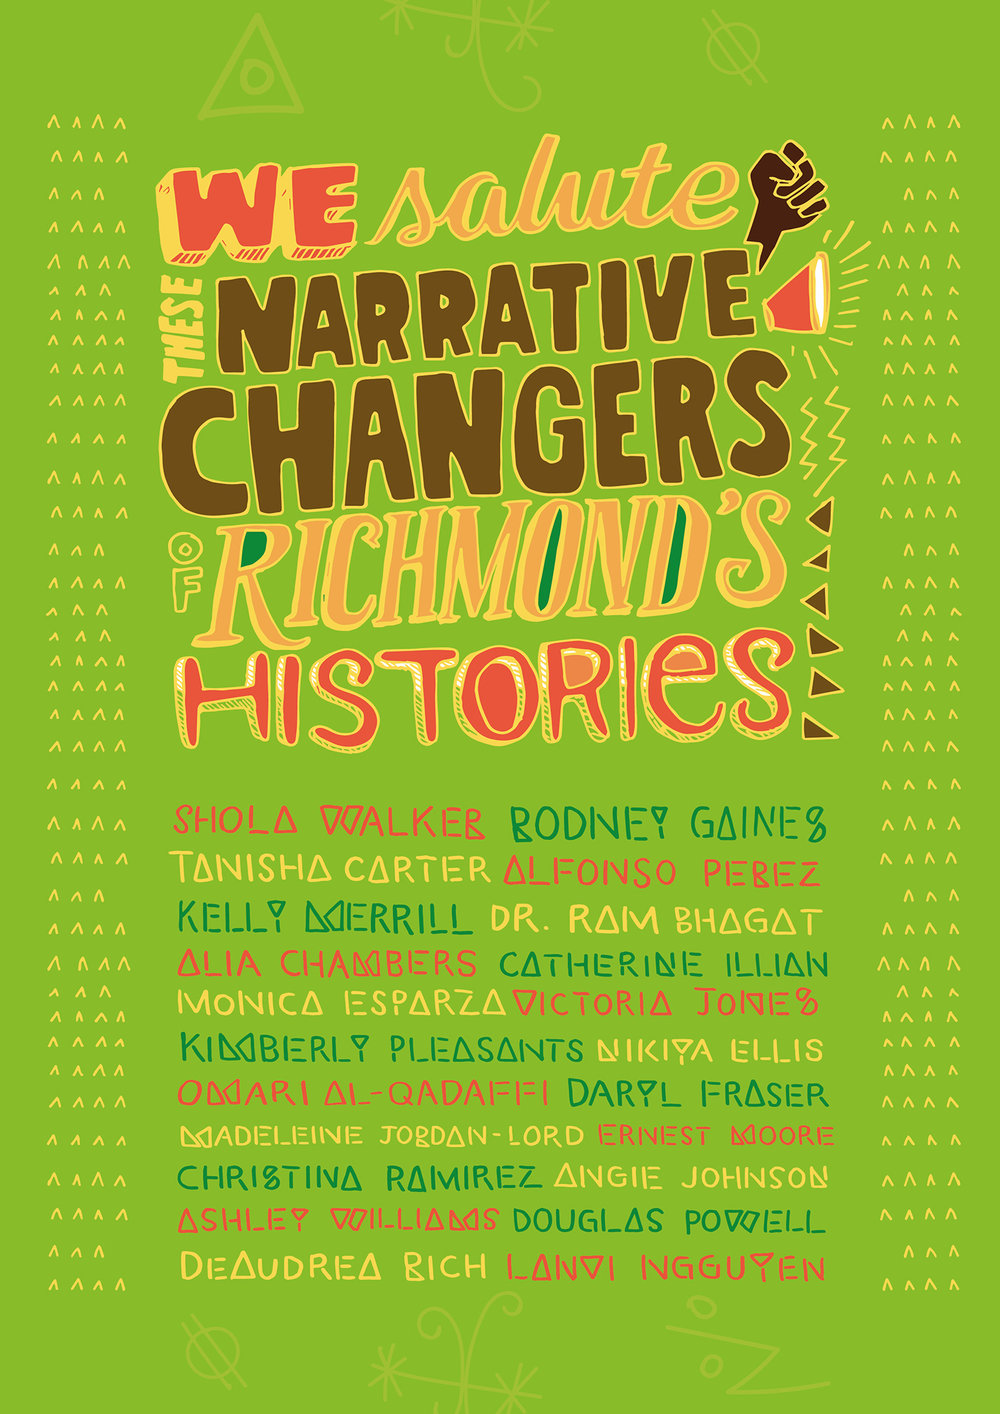 We also recognize the important work that all the first-year NCC applicants are making as Richmond's Narrative Changers!